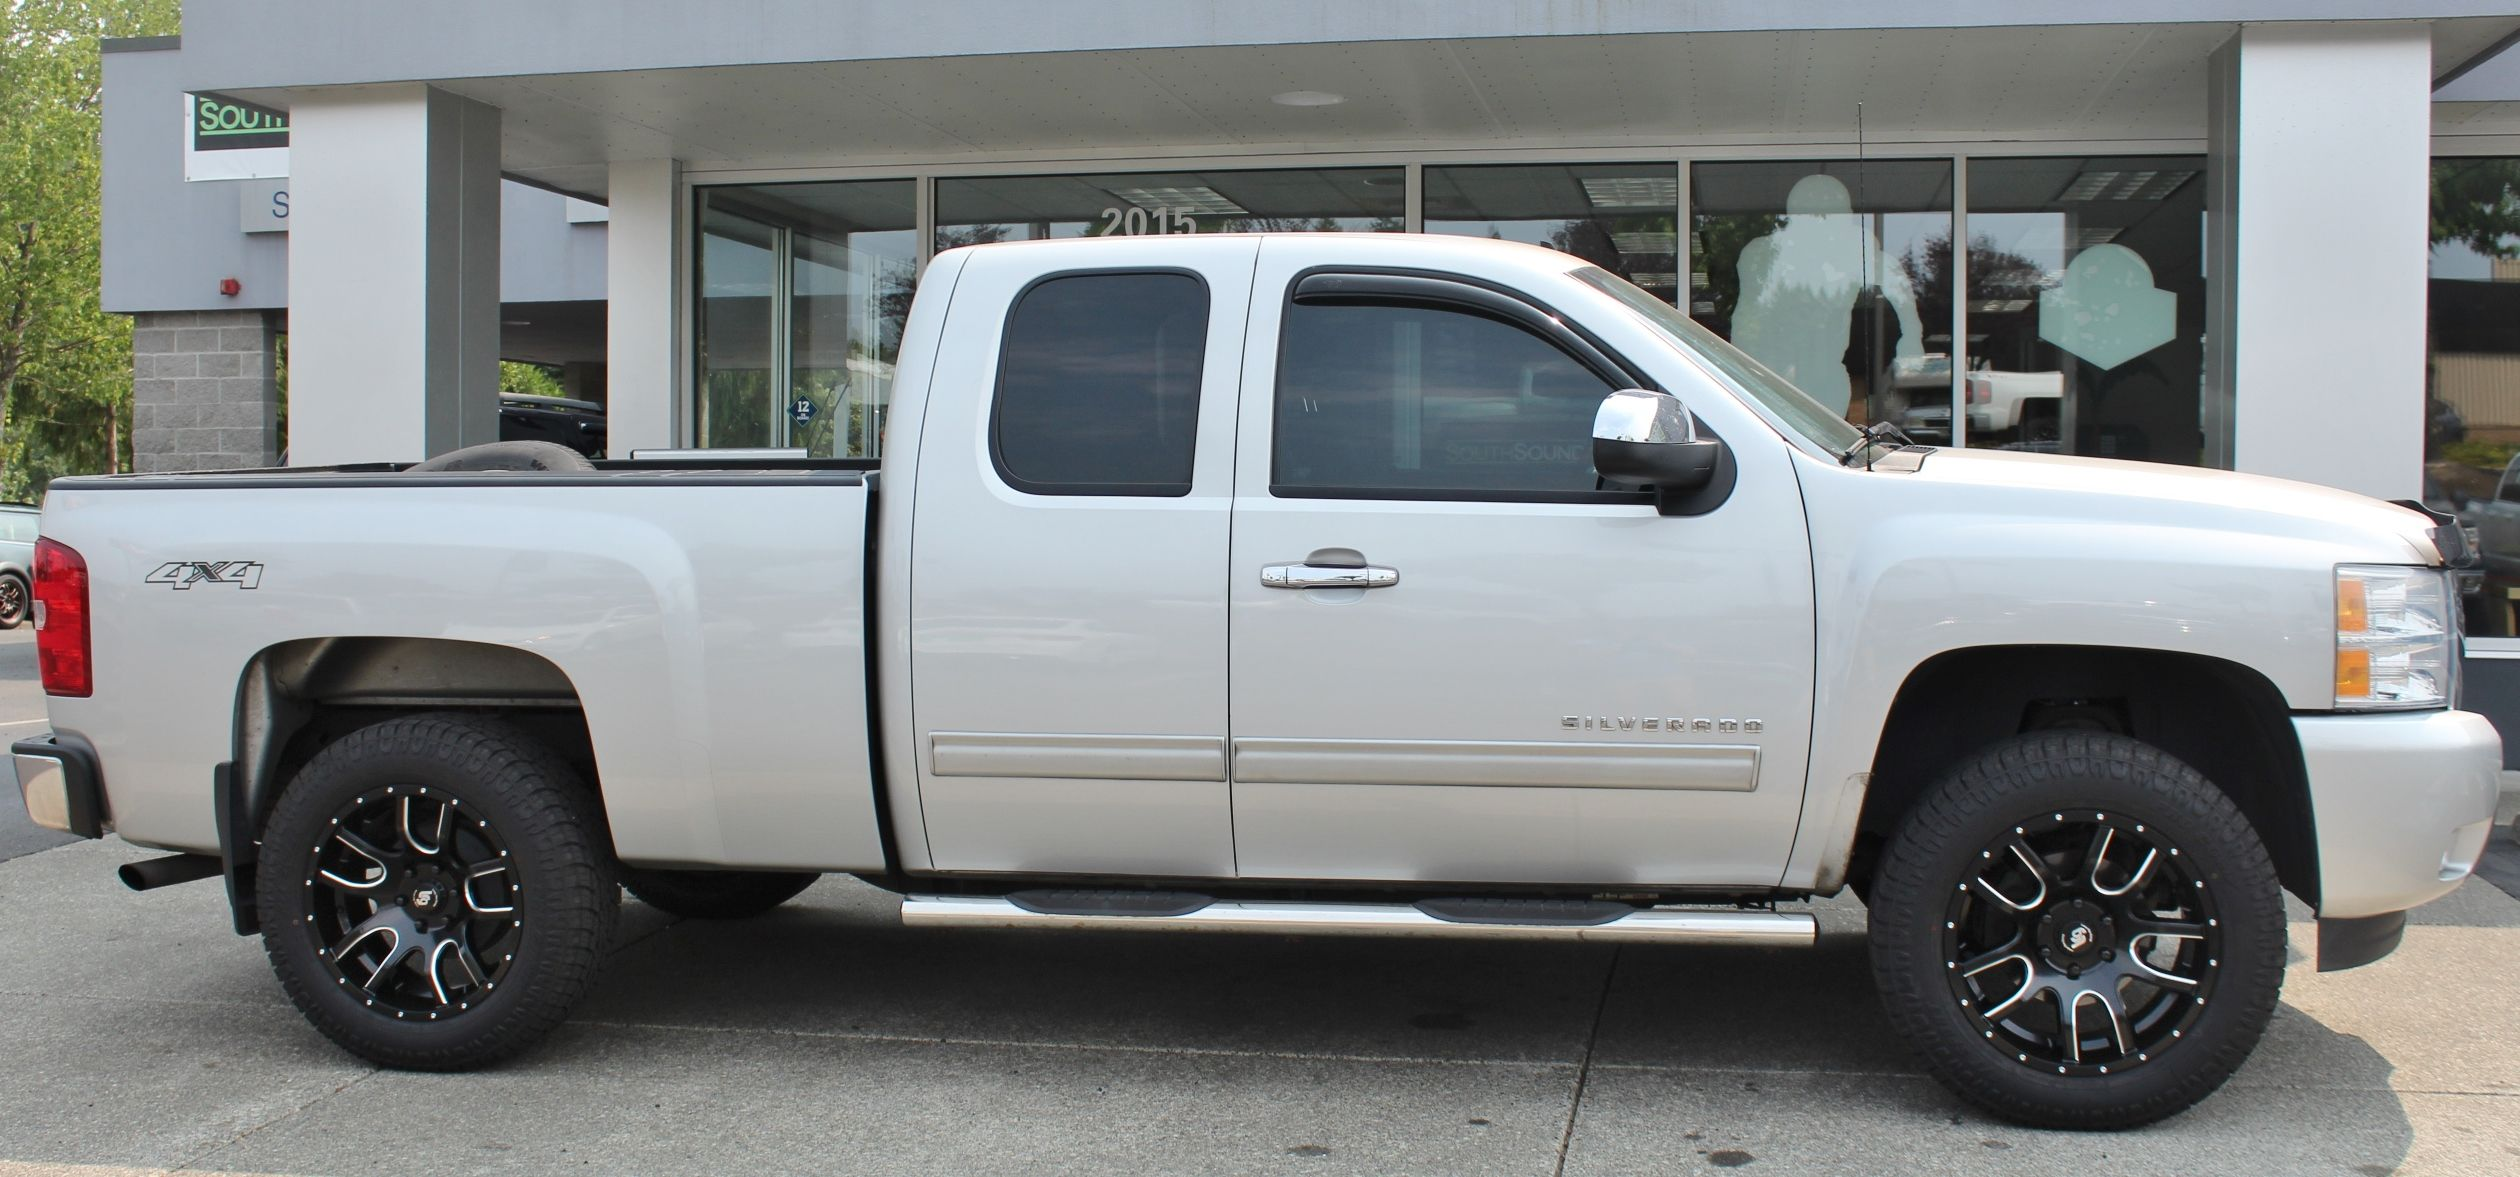 Home dodge exterior amp appearance 94 02 dodge ram 2500 3500 srw - Pre Owned 2011 Chevrolet Silverado 1500 Lt